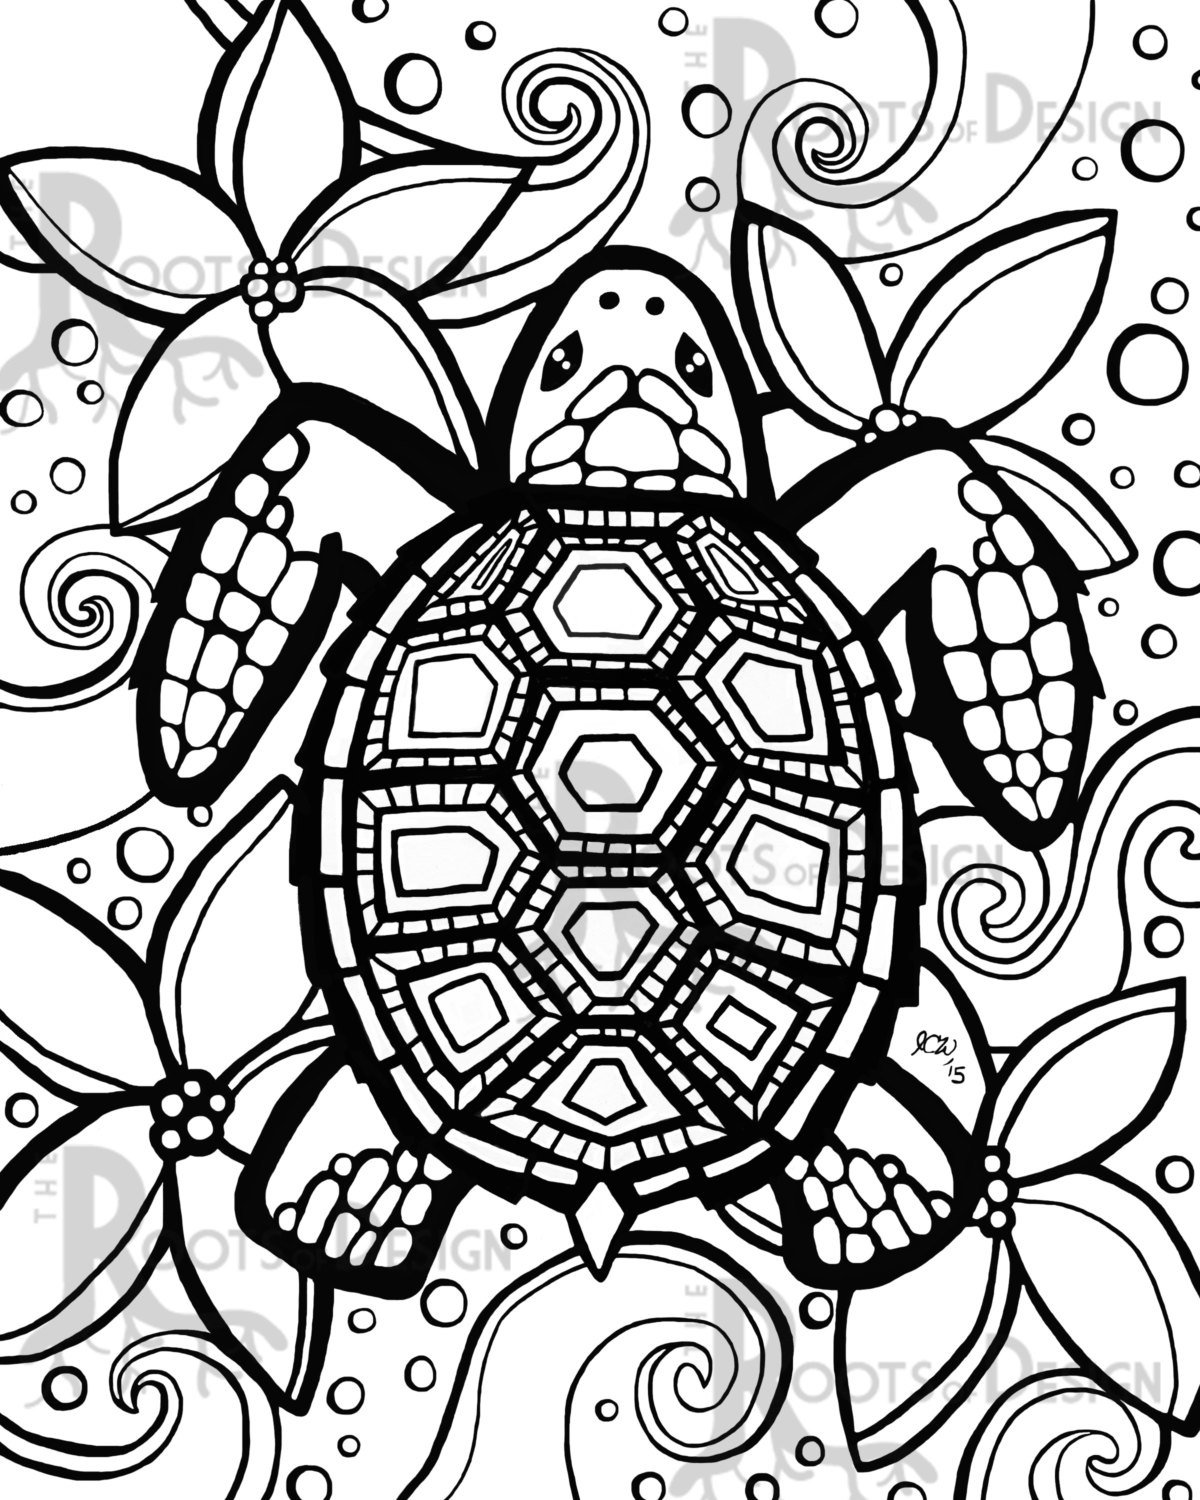 Turtle Coloring Pages For Kids Archives And Turtle Coloring Pages